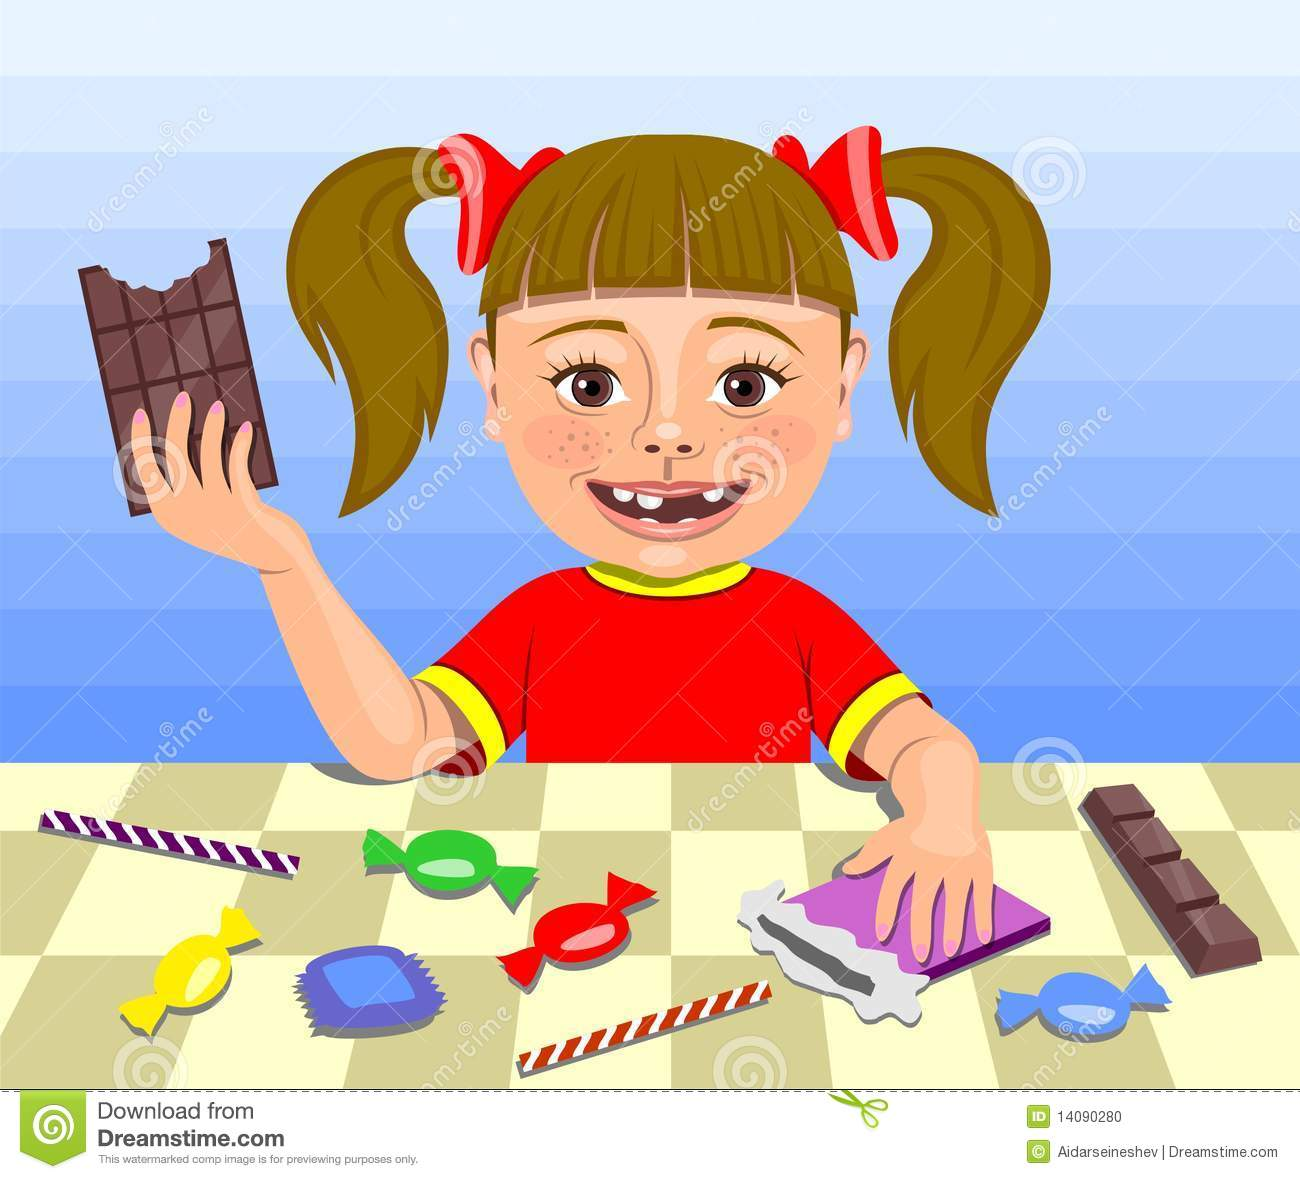 Girl eating candy clipart.